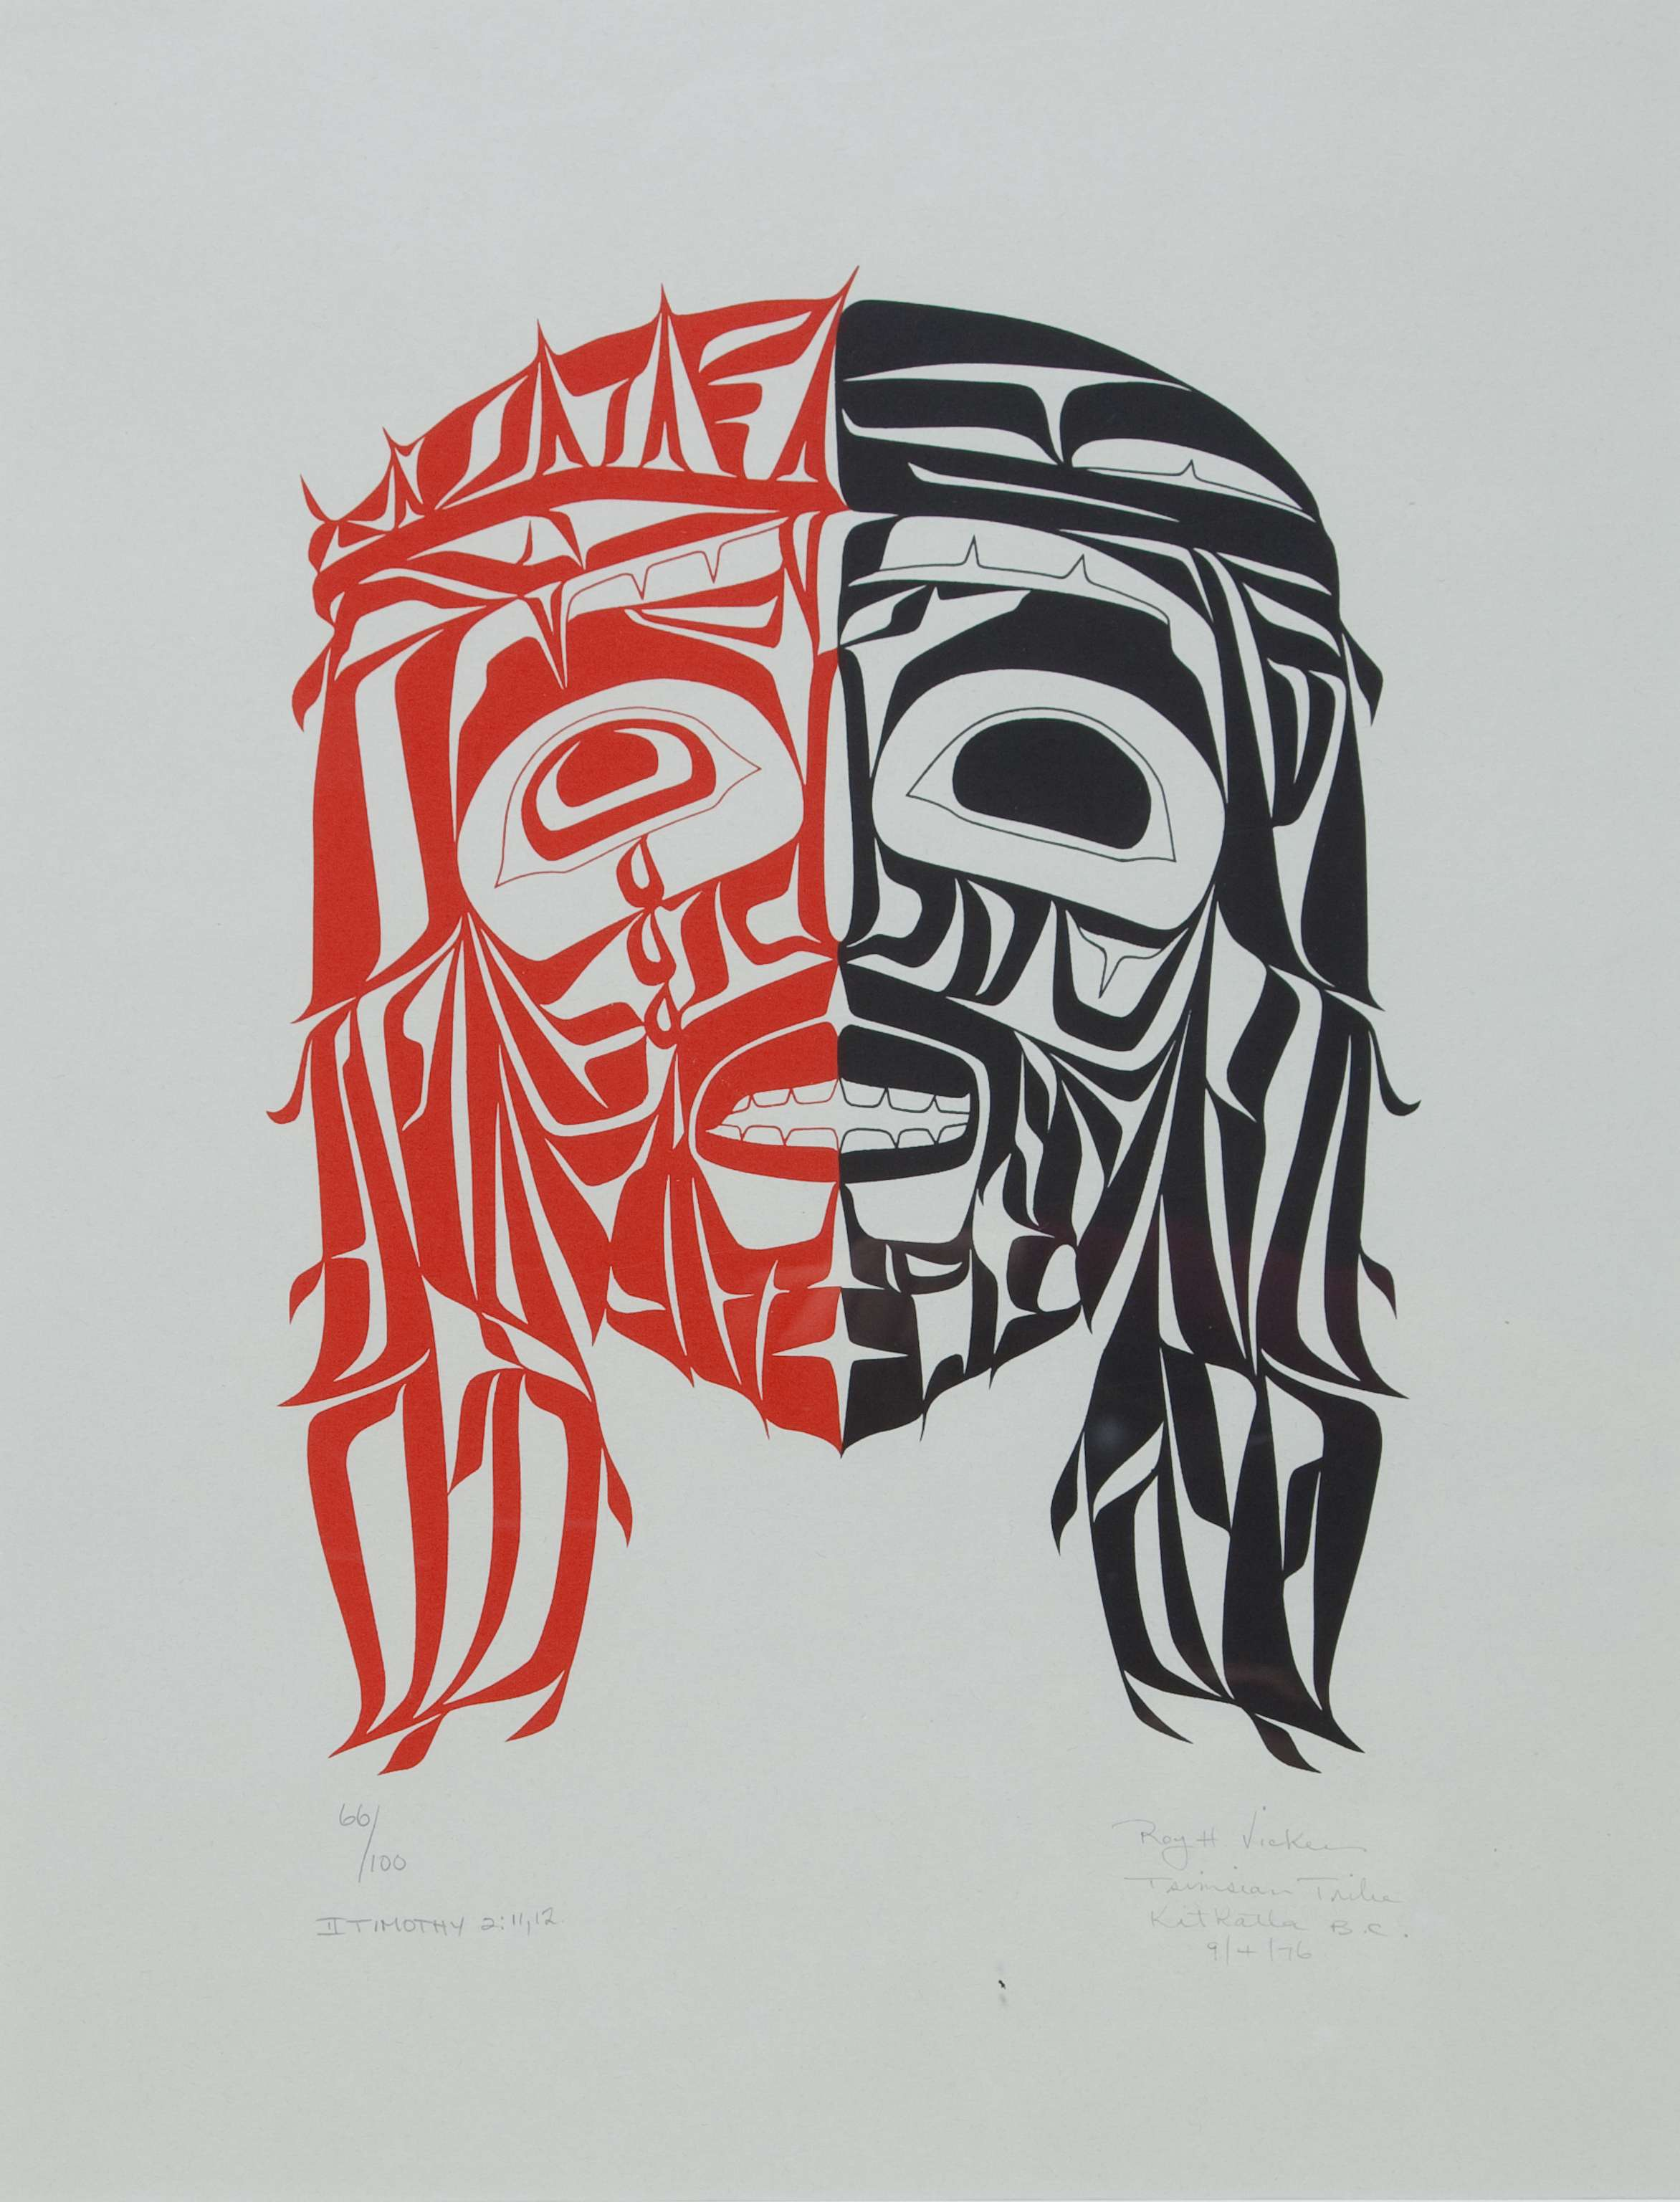 ARTFUL BLOGGER: New God(s) exhibit at Canadian Museum of Civilization explores the good, the bad, and the religious